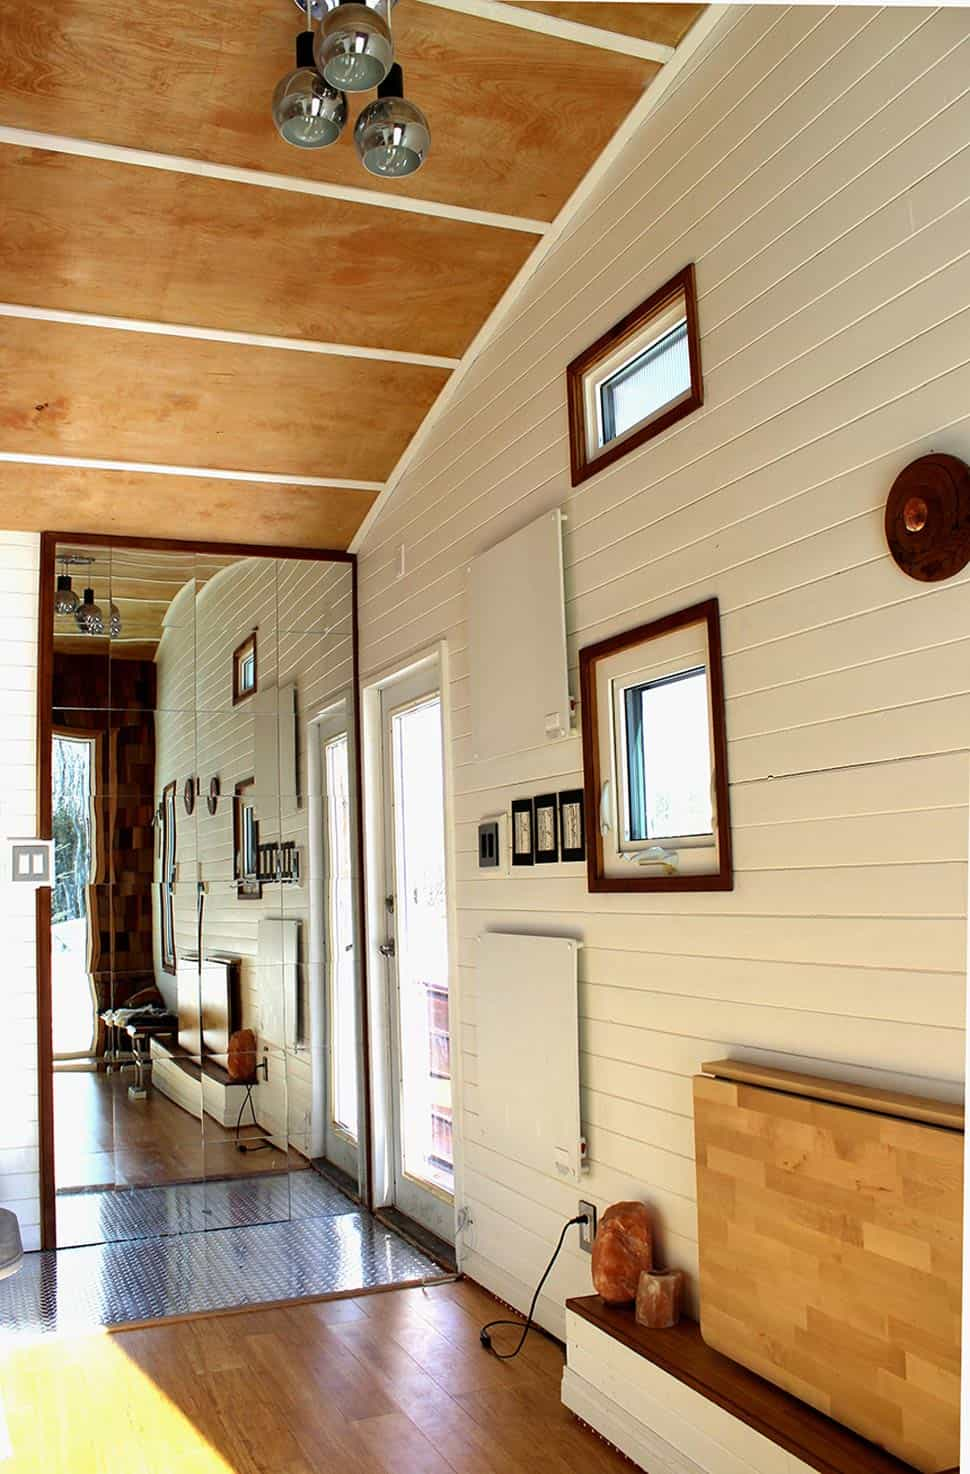 Tiny Home Designs Plans: Tiny House Design For Cold Weather